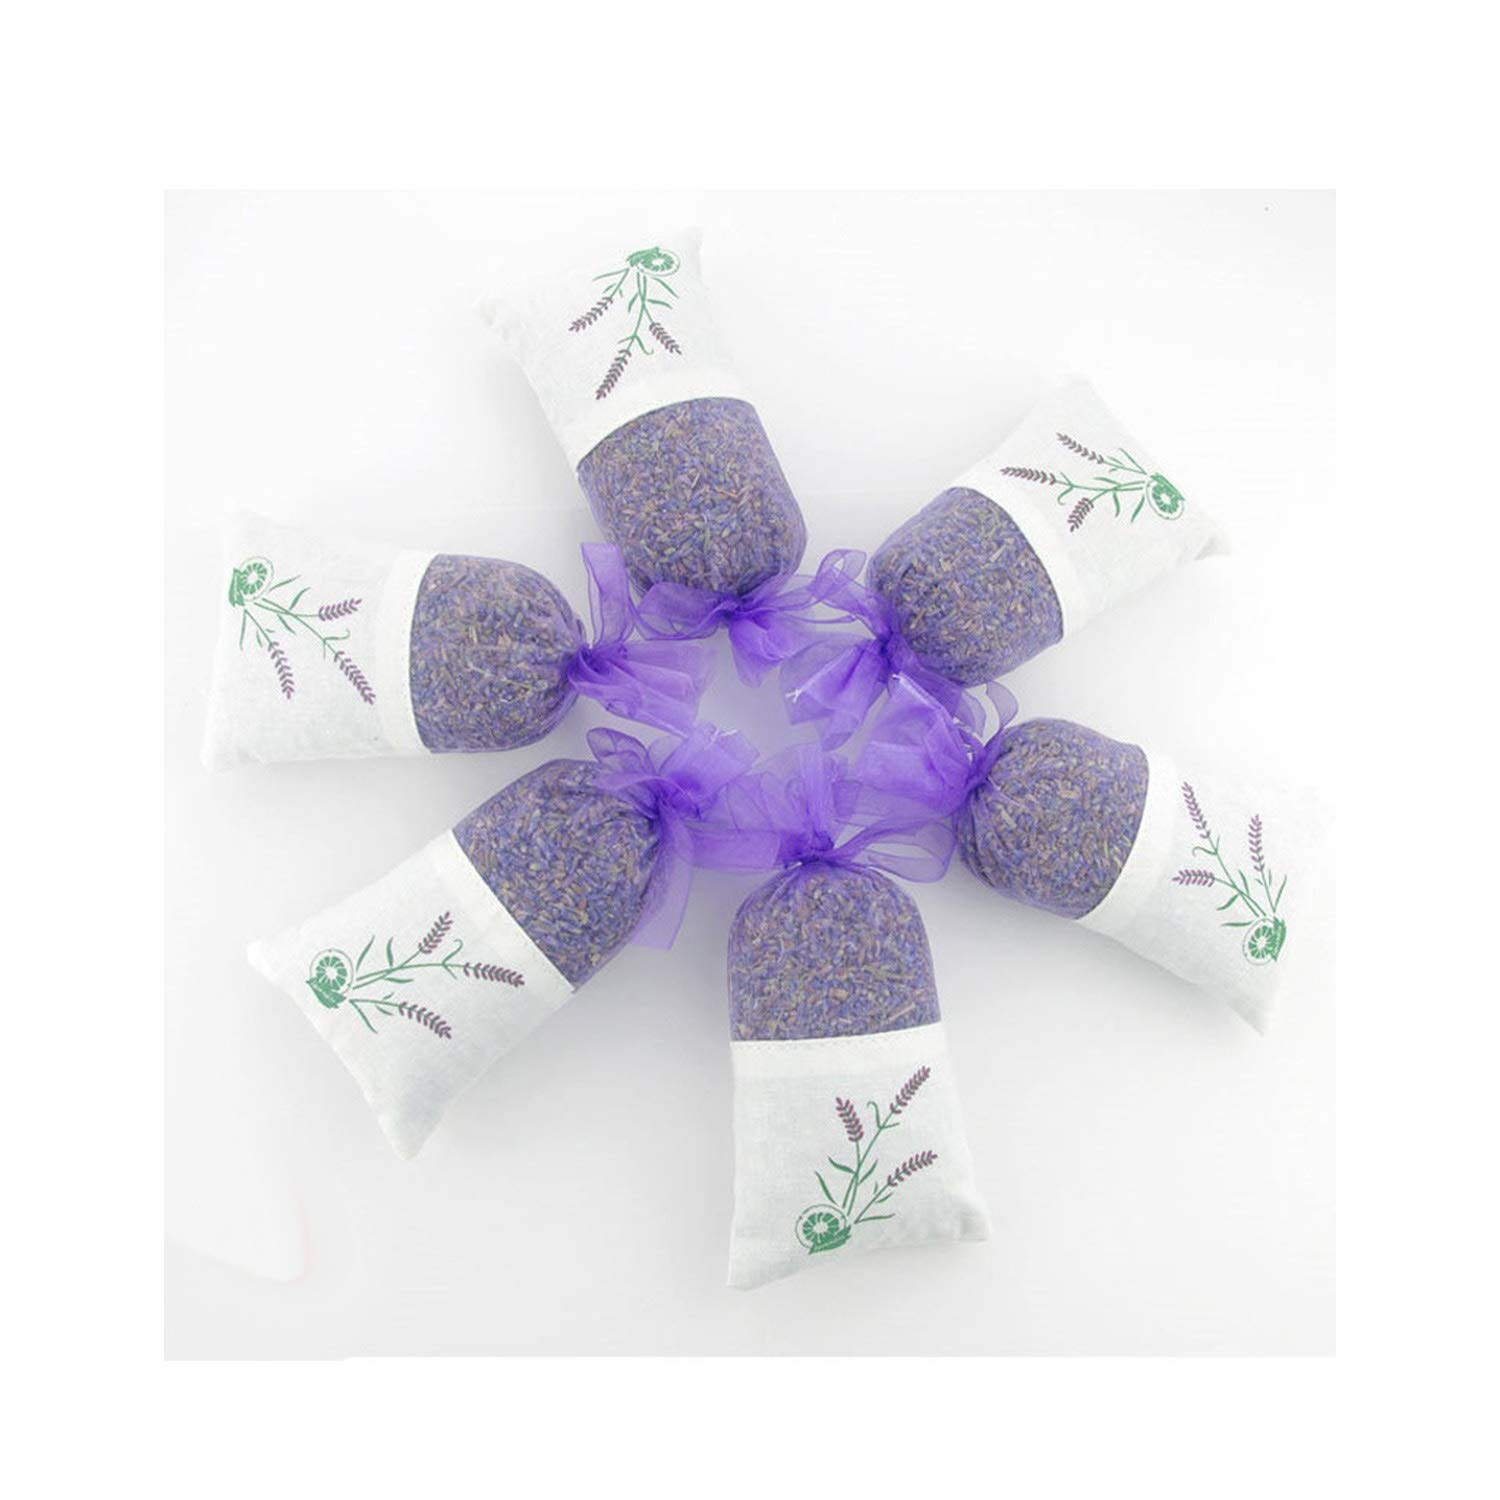 yuexianghui Natural Dried Flowers Lavender Bud Sachet Decorative Flower Aromatic Air Fresh Living Room Drawer,6 Pcs by yuexianghui